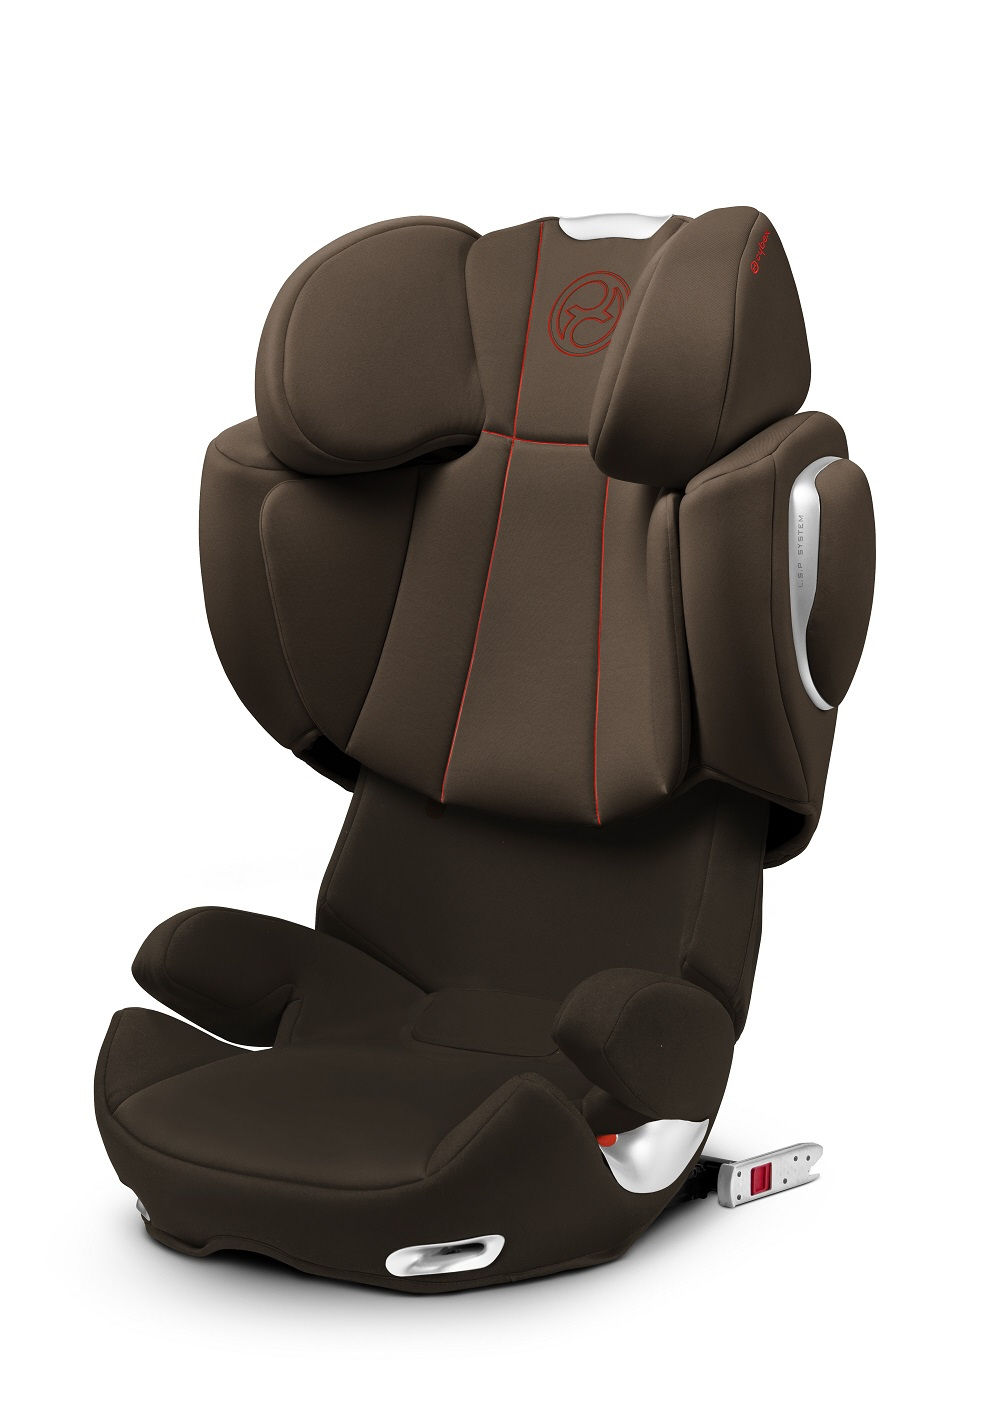 cybex child car seat solution q2 fix buy at kidsroom car seats isofix child car seats. Black Bedroom Furniture Sets. Home Design Ideas